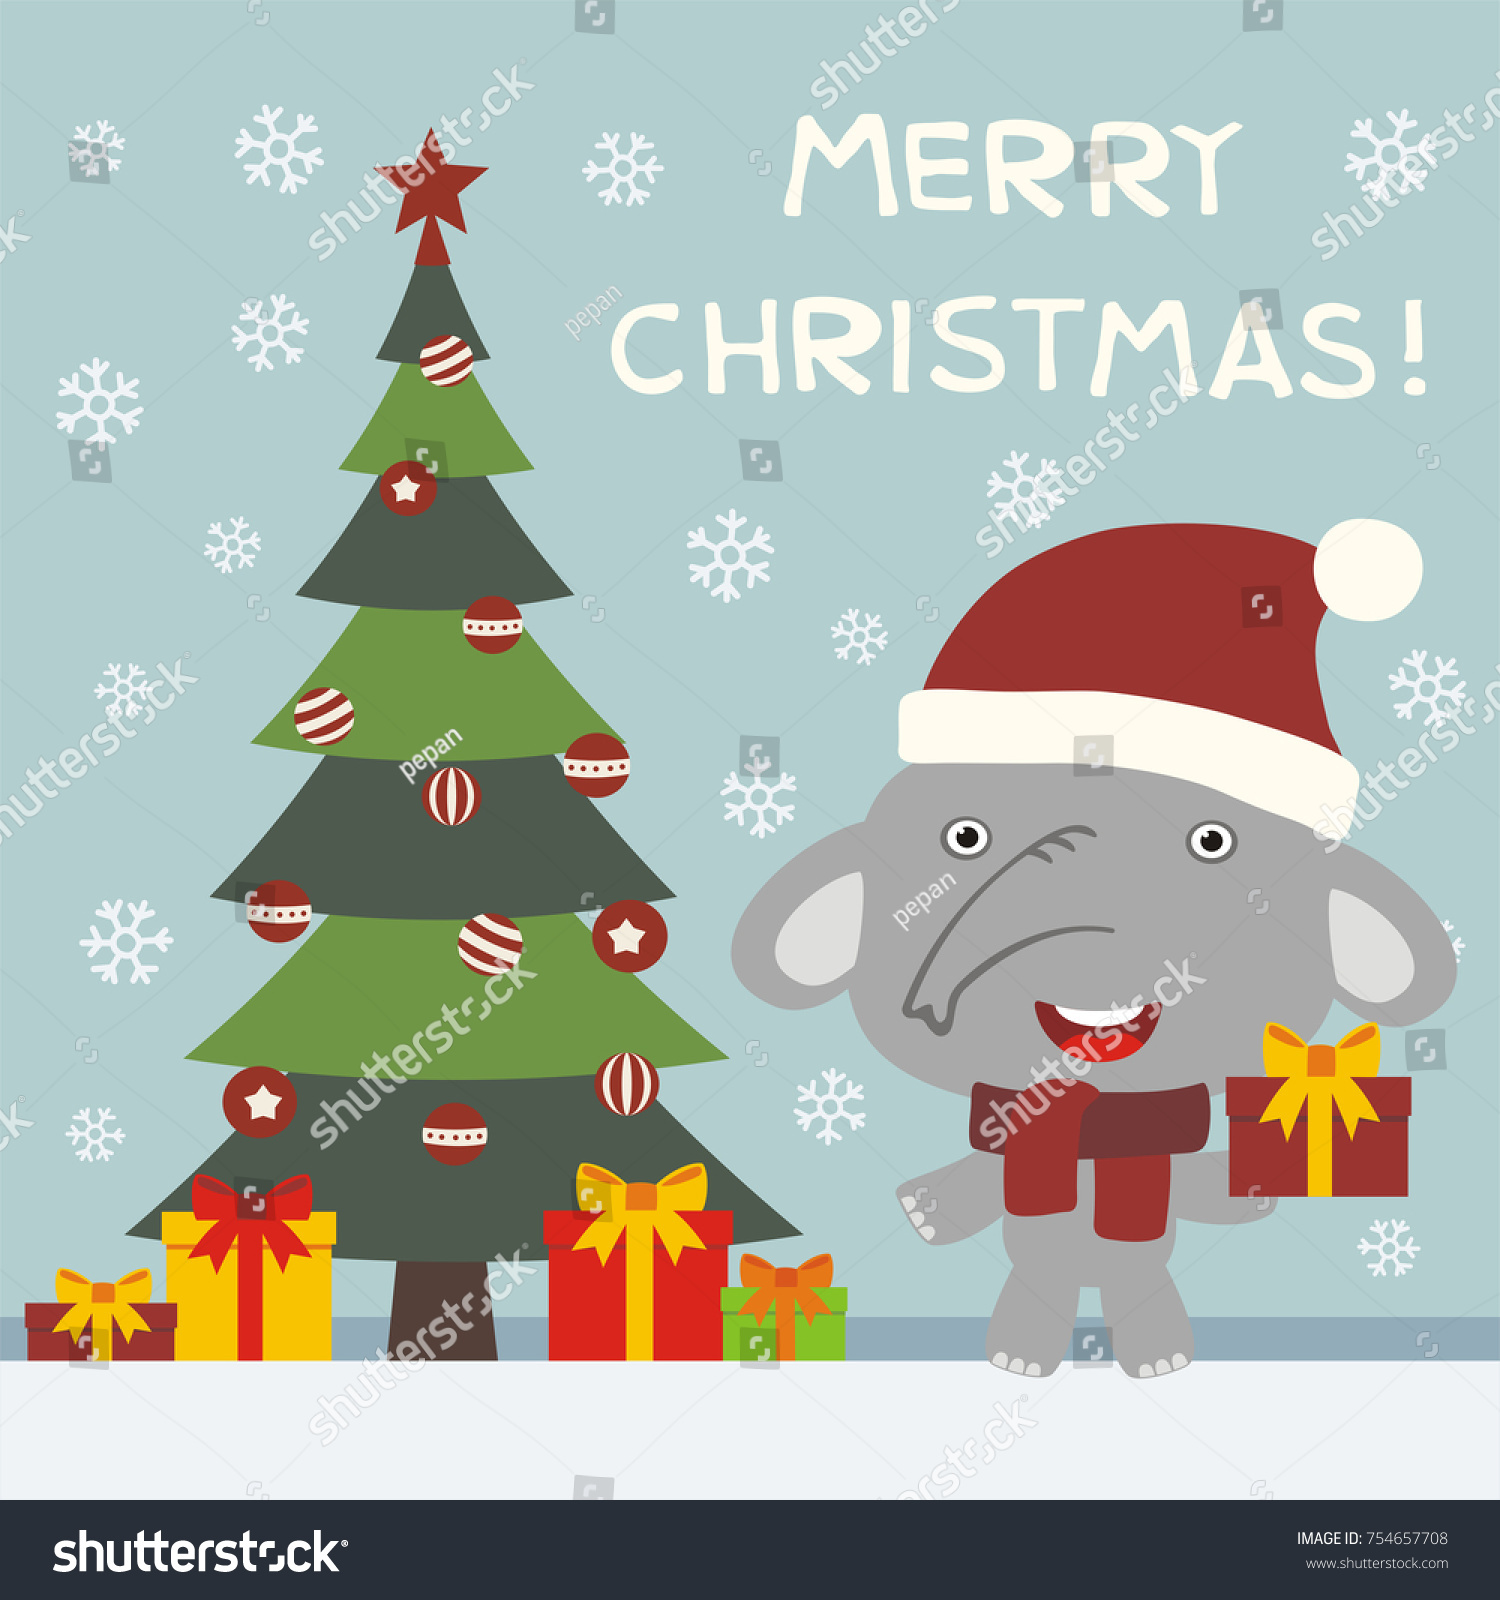 Merry Christmas Greeting Card With Funny Elephant With Gifts Ez